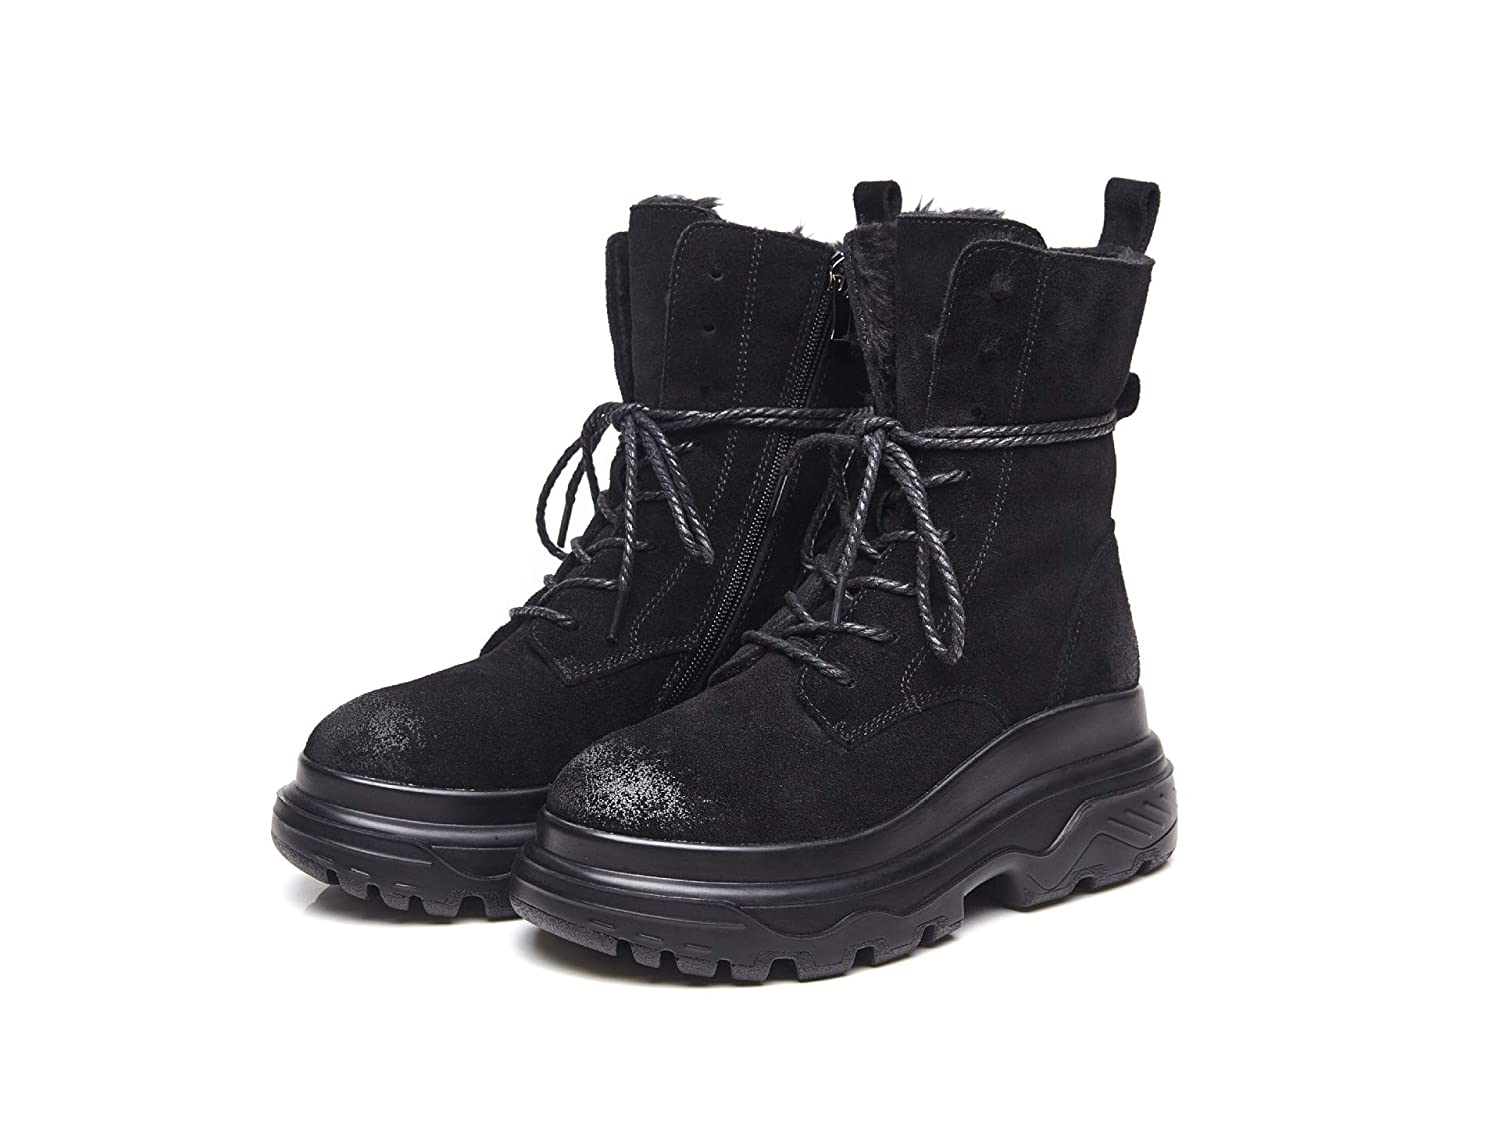 HOESCZS Mujer Zapatos In The and Invierno To Help Help Help Keep Warm Inside The High-End Platform Zapatos Mujer Zapatos Thick-Soled Botas Frosted Martin, Negro, 35 b6c727